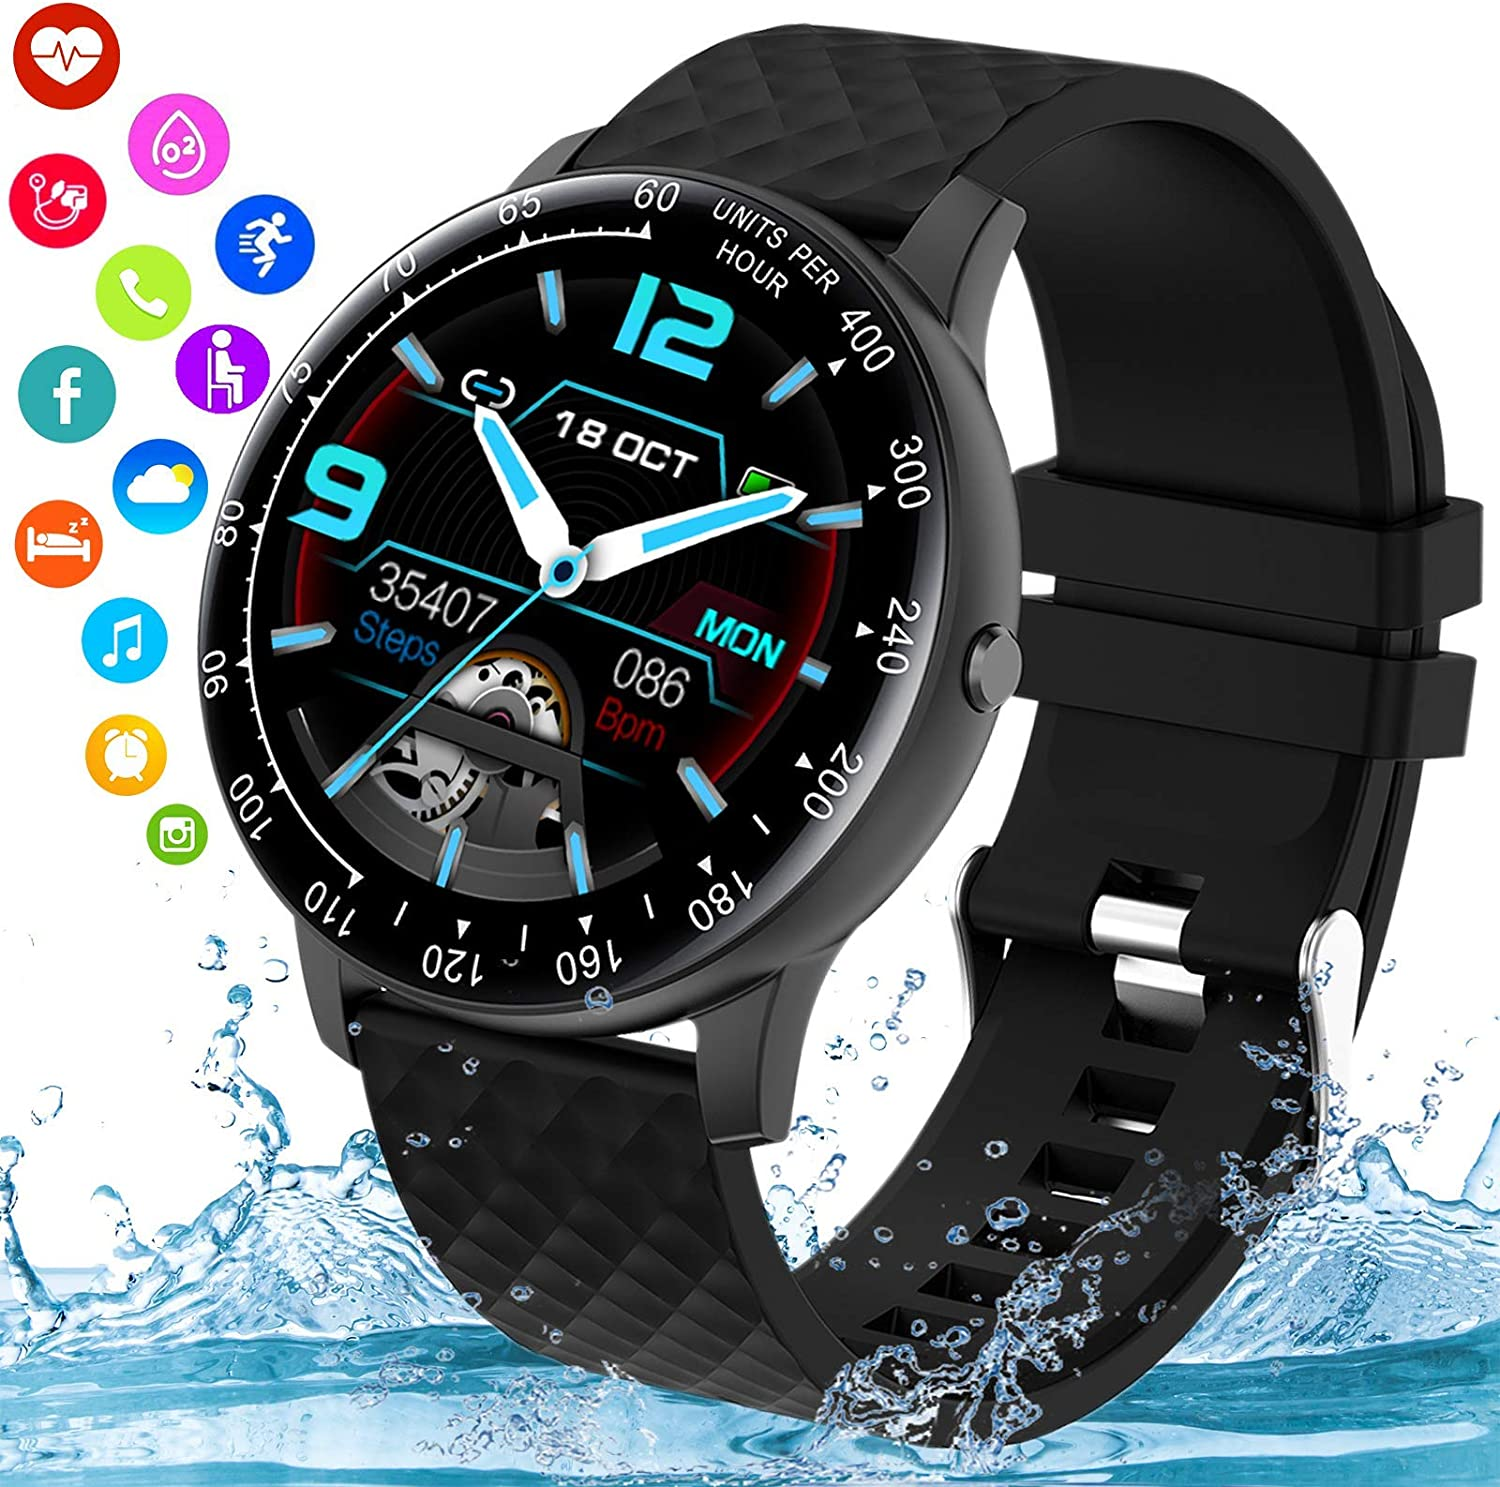 Topkech Smart Watch Smartwatch for Factory outlet Philadelphia Mall Ip67 Waterproo Phones Android